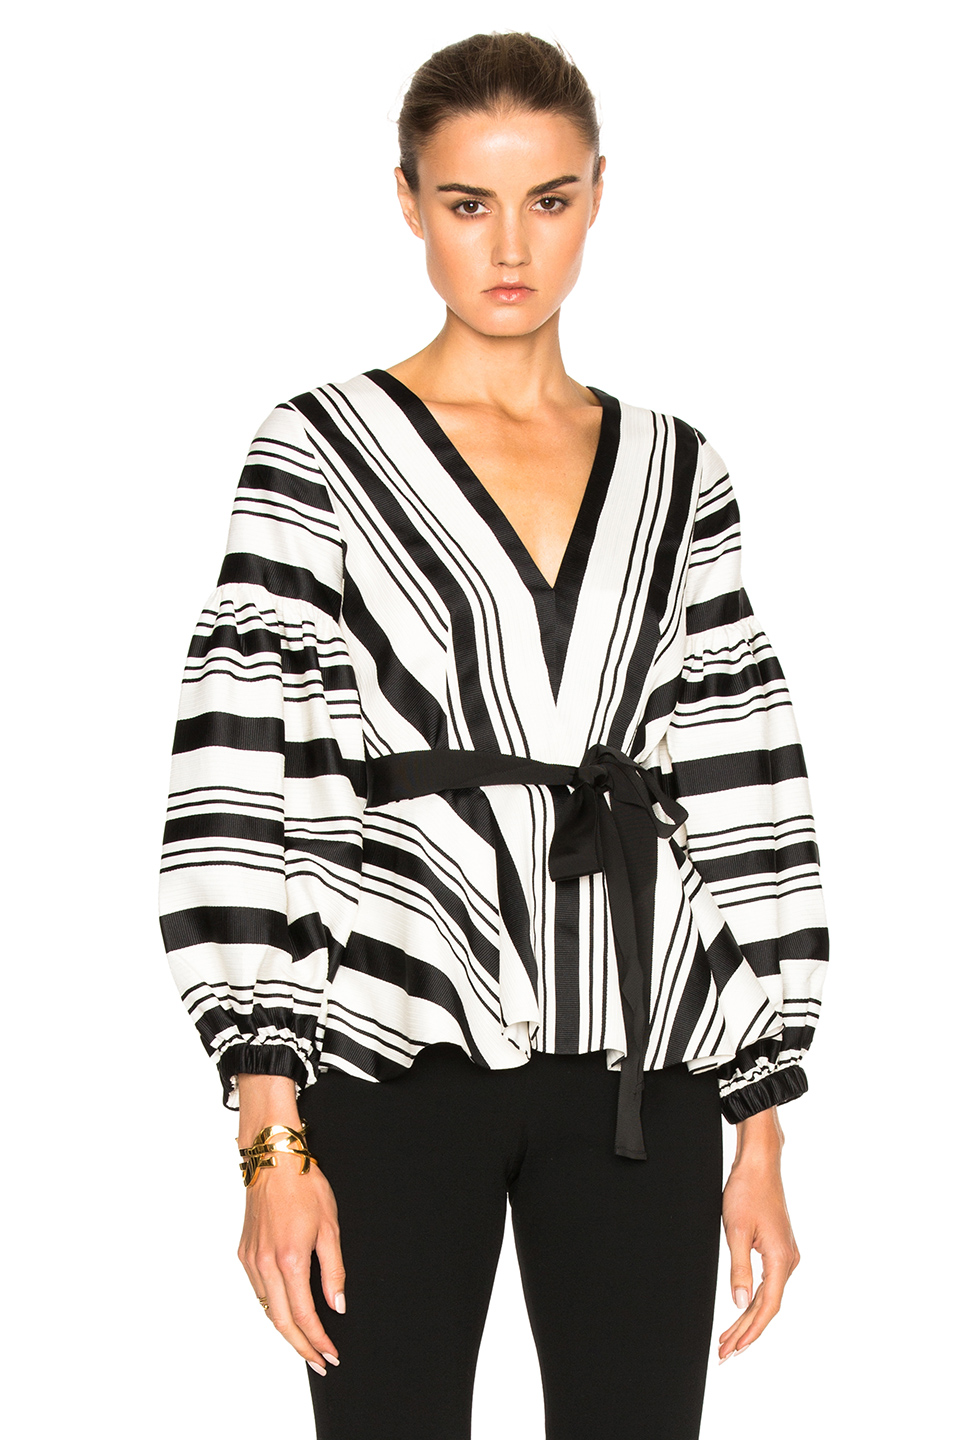 Alexis Sienna Top in Stripes